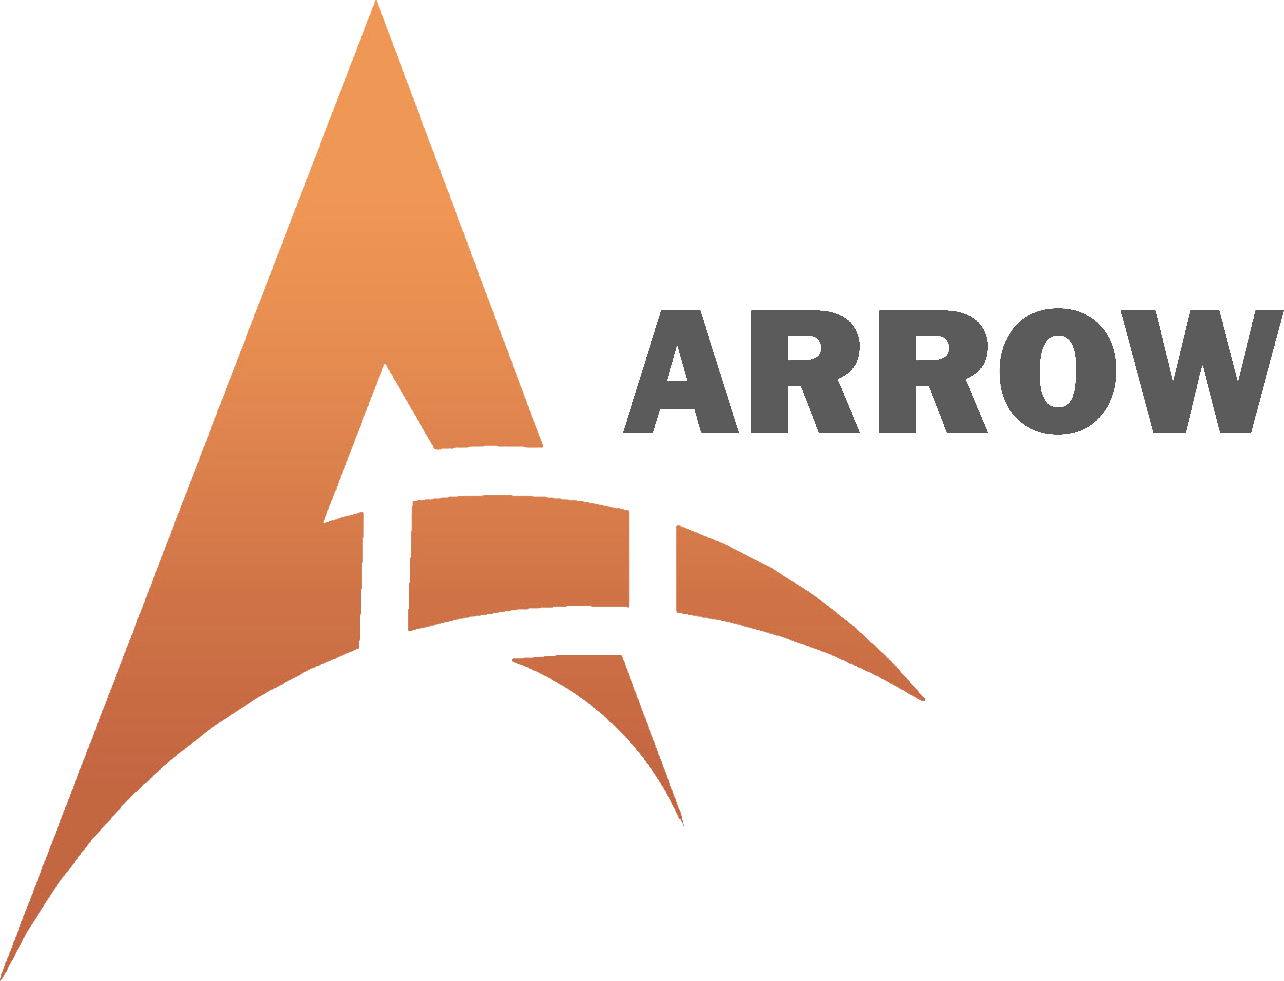 Arrow logo.png